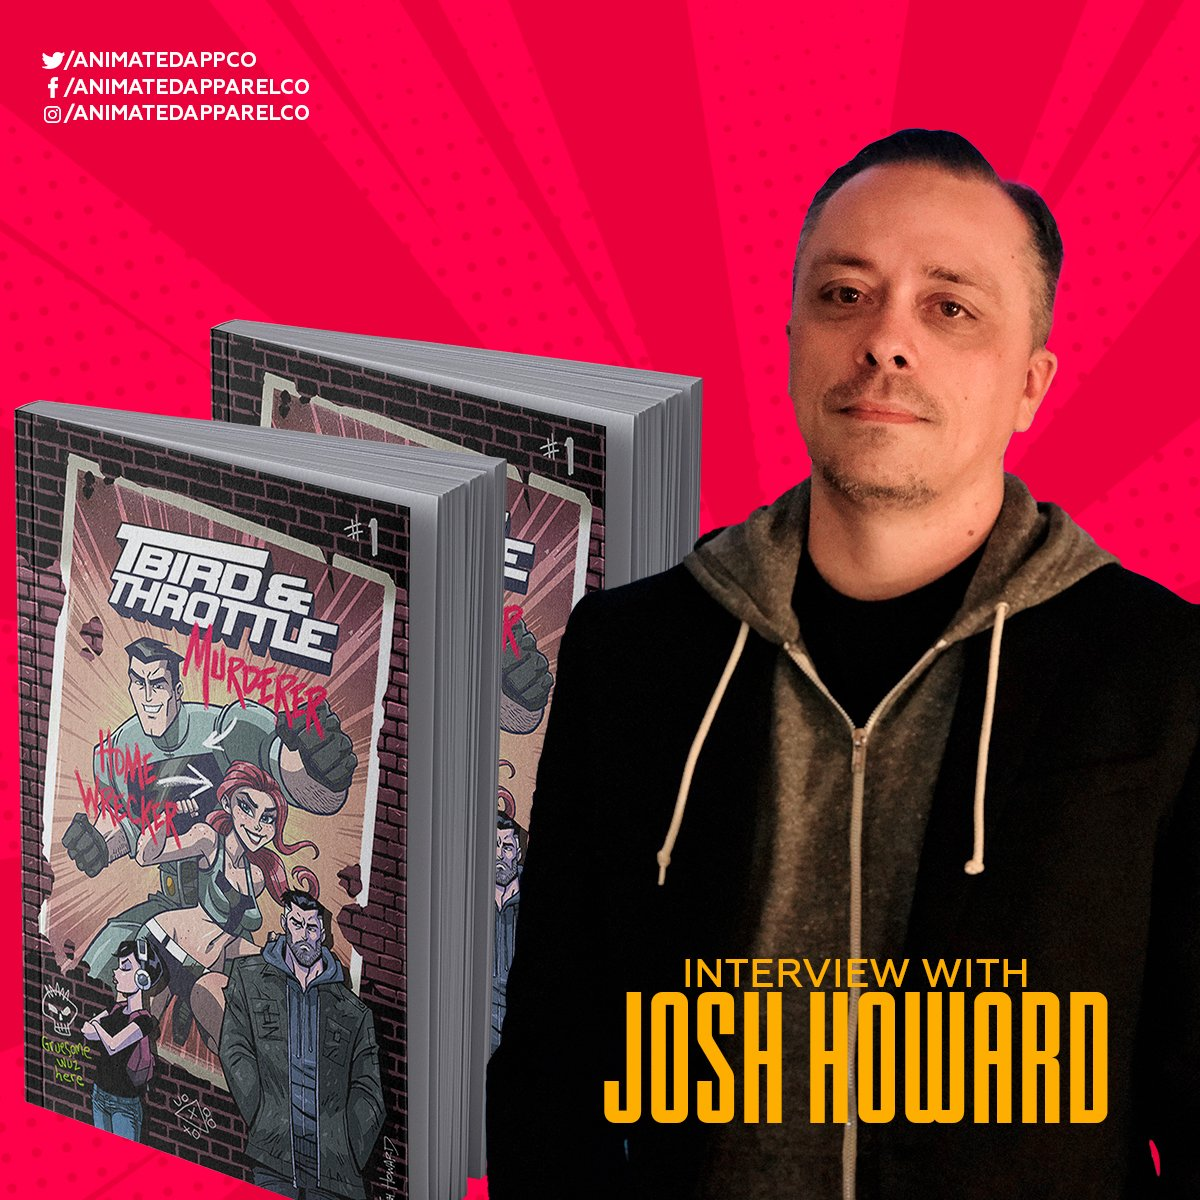 Josh Howard's interview with Animated Apparel Company